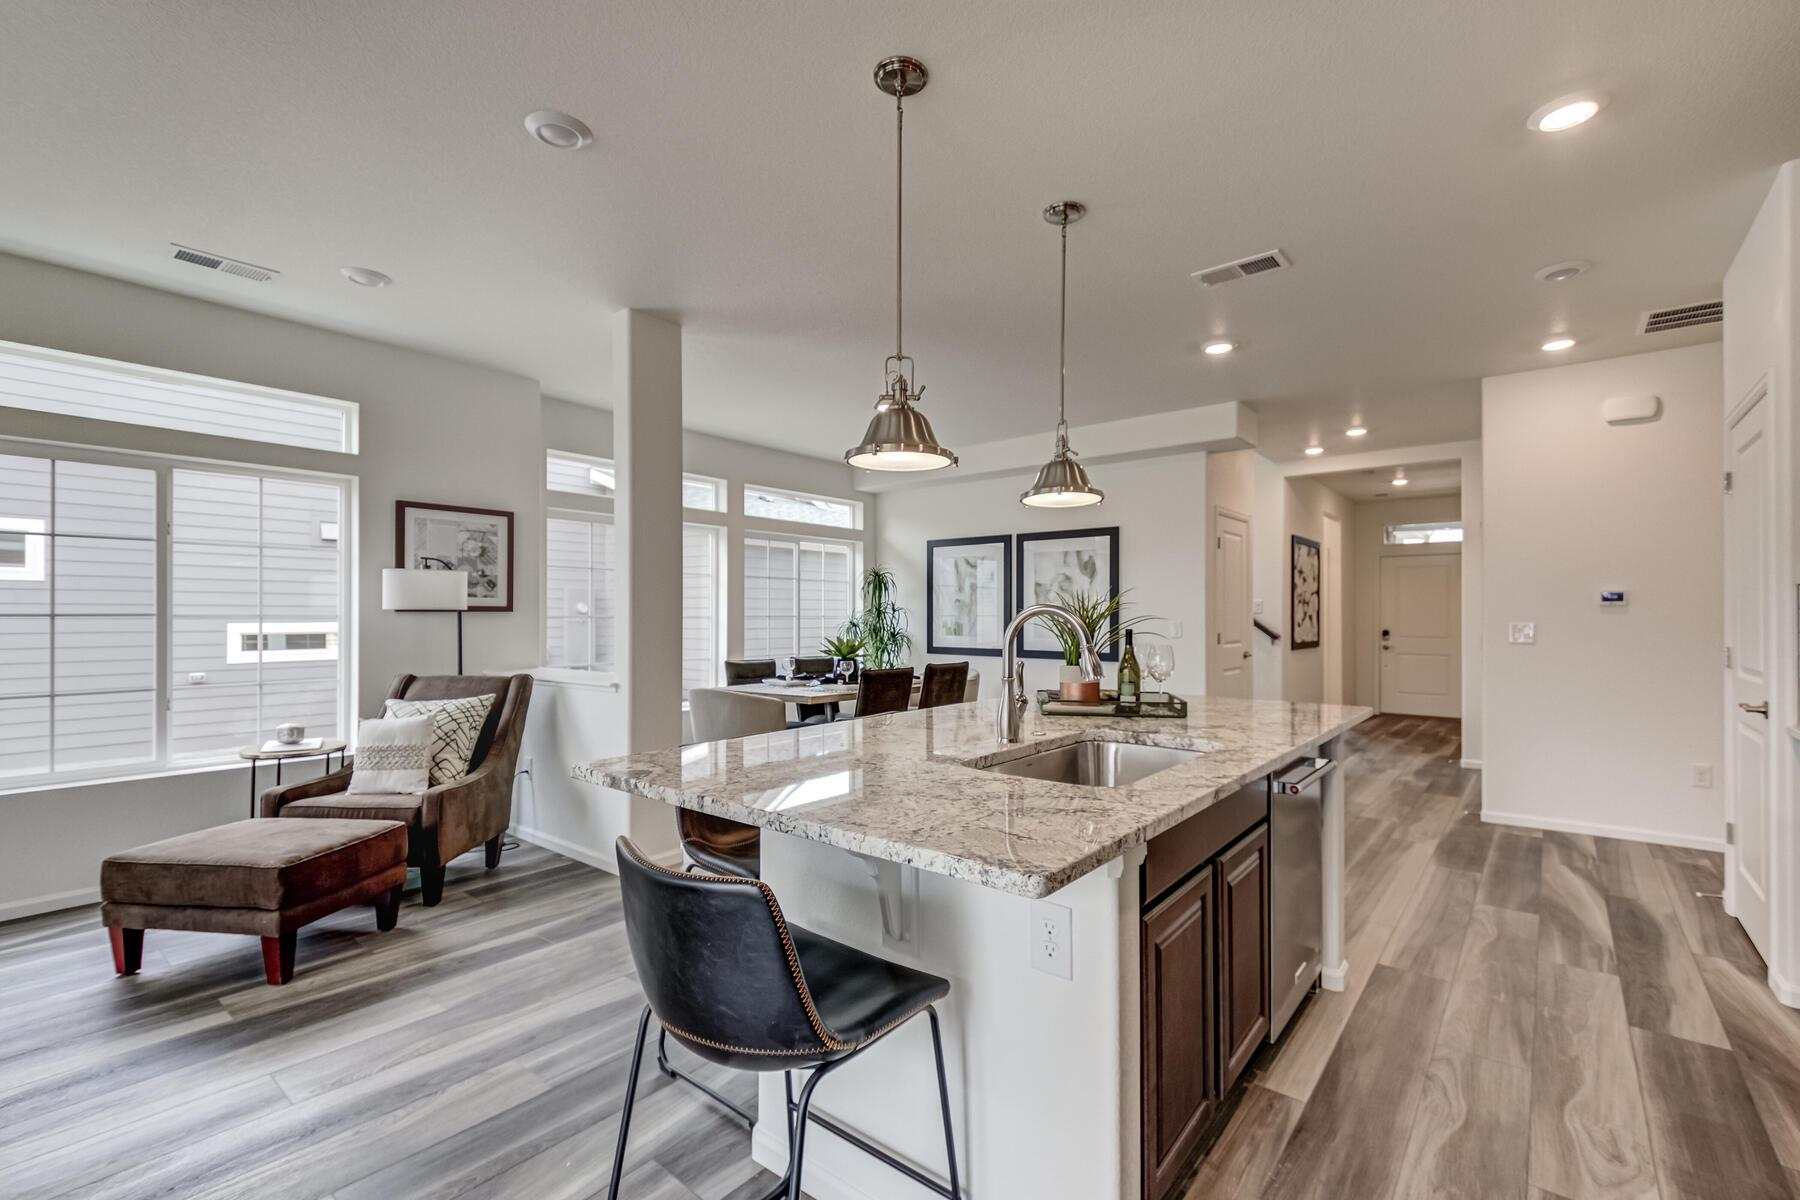 Kitchen featured in the Haven By OakwoodLife in Denver, CO